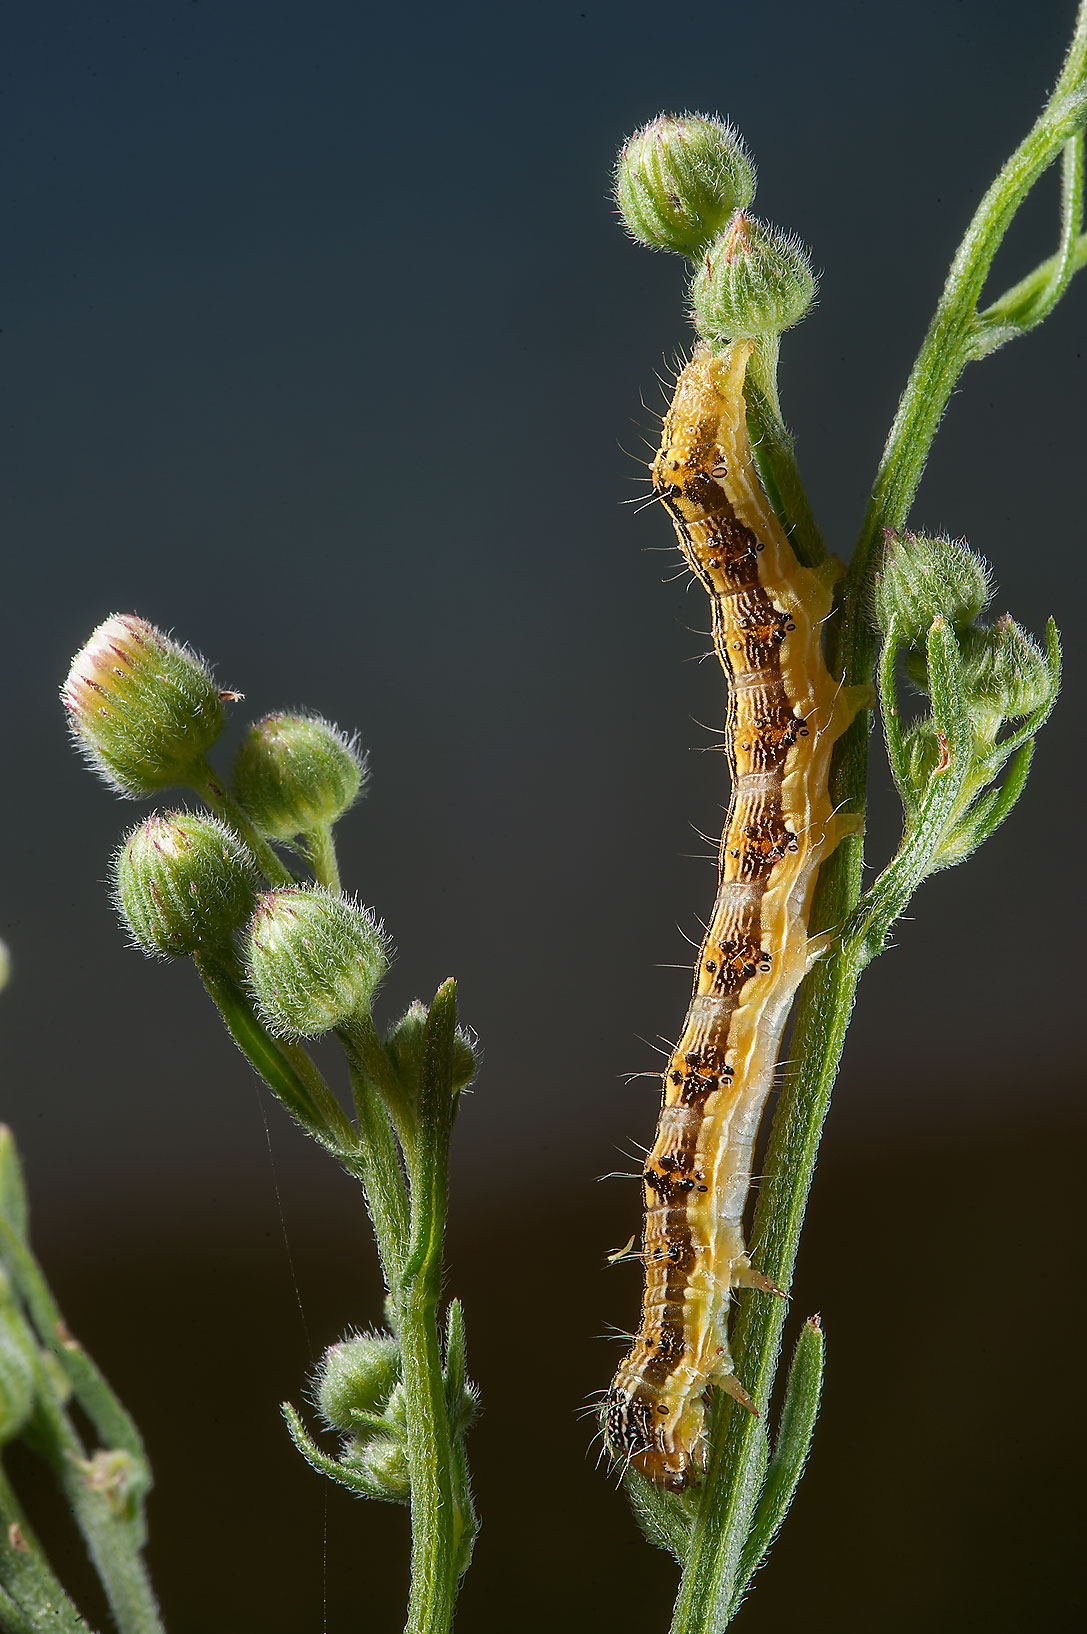 Caterpillar feeding on flowers of fleabane daisy...Irkaya) Farms. South-western Qatar